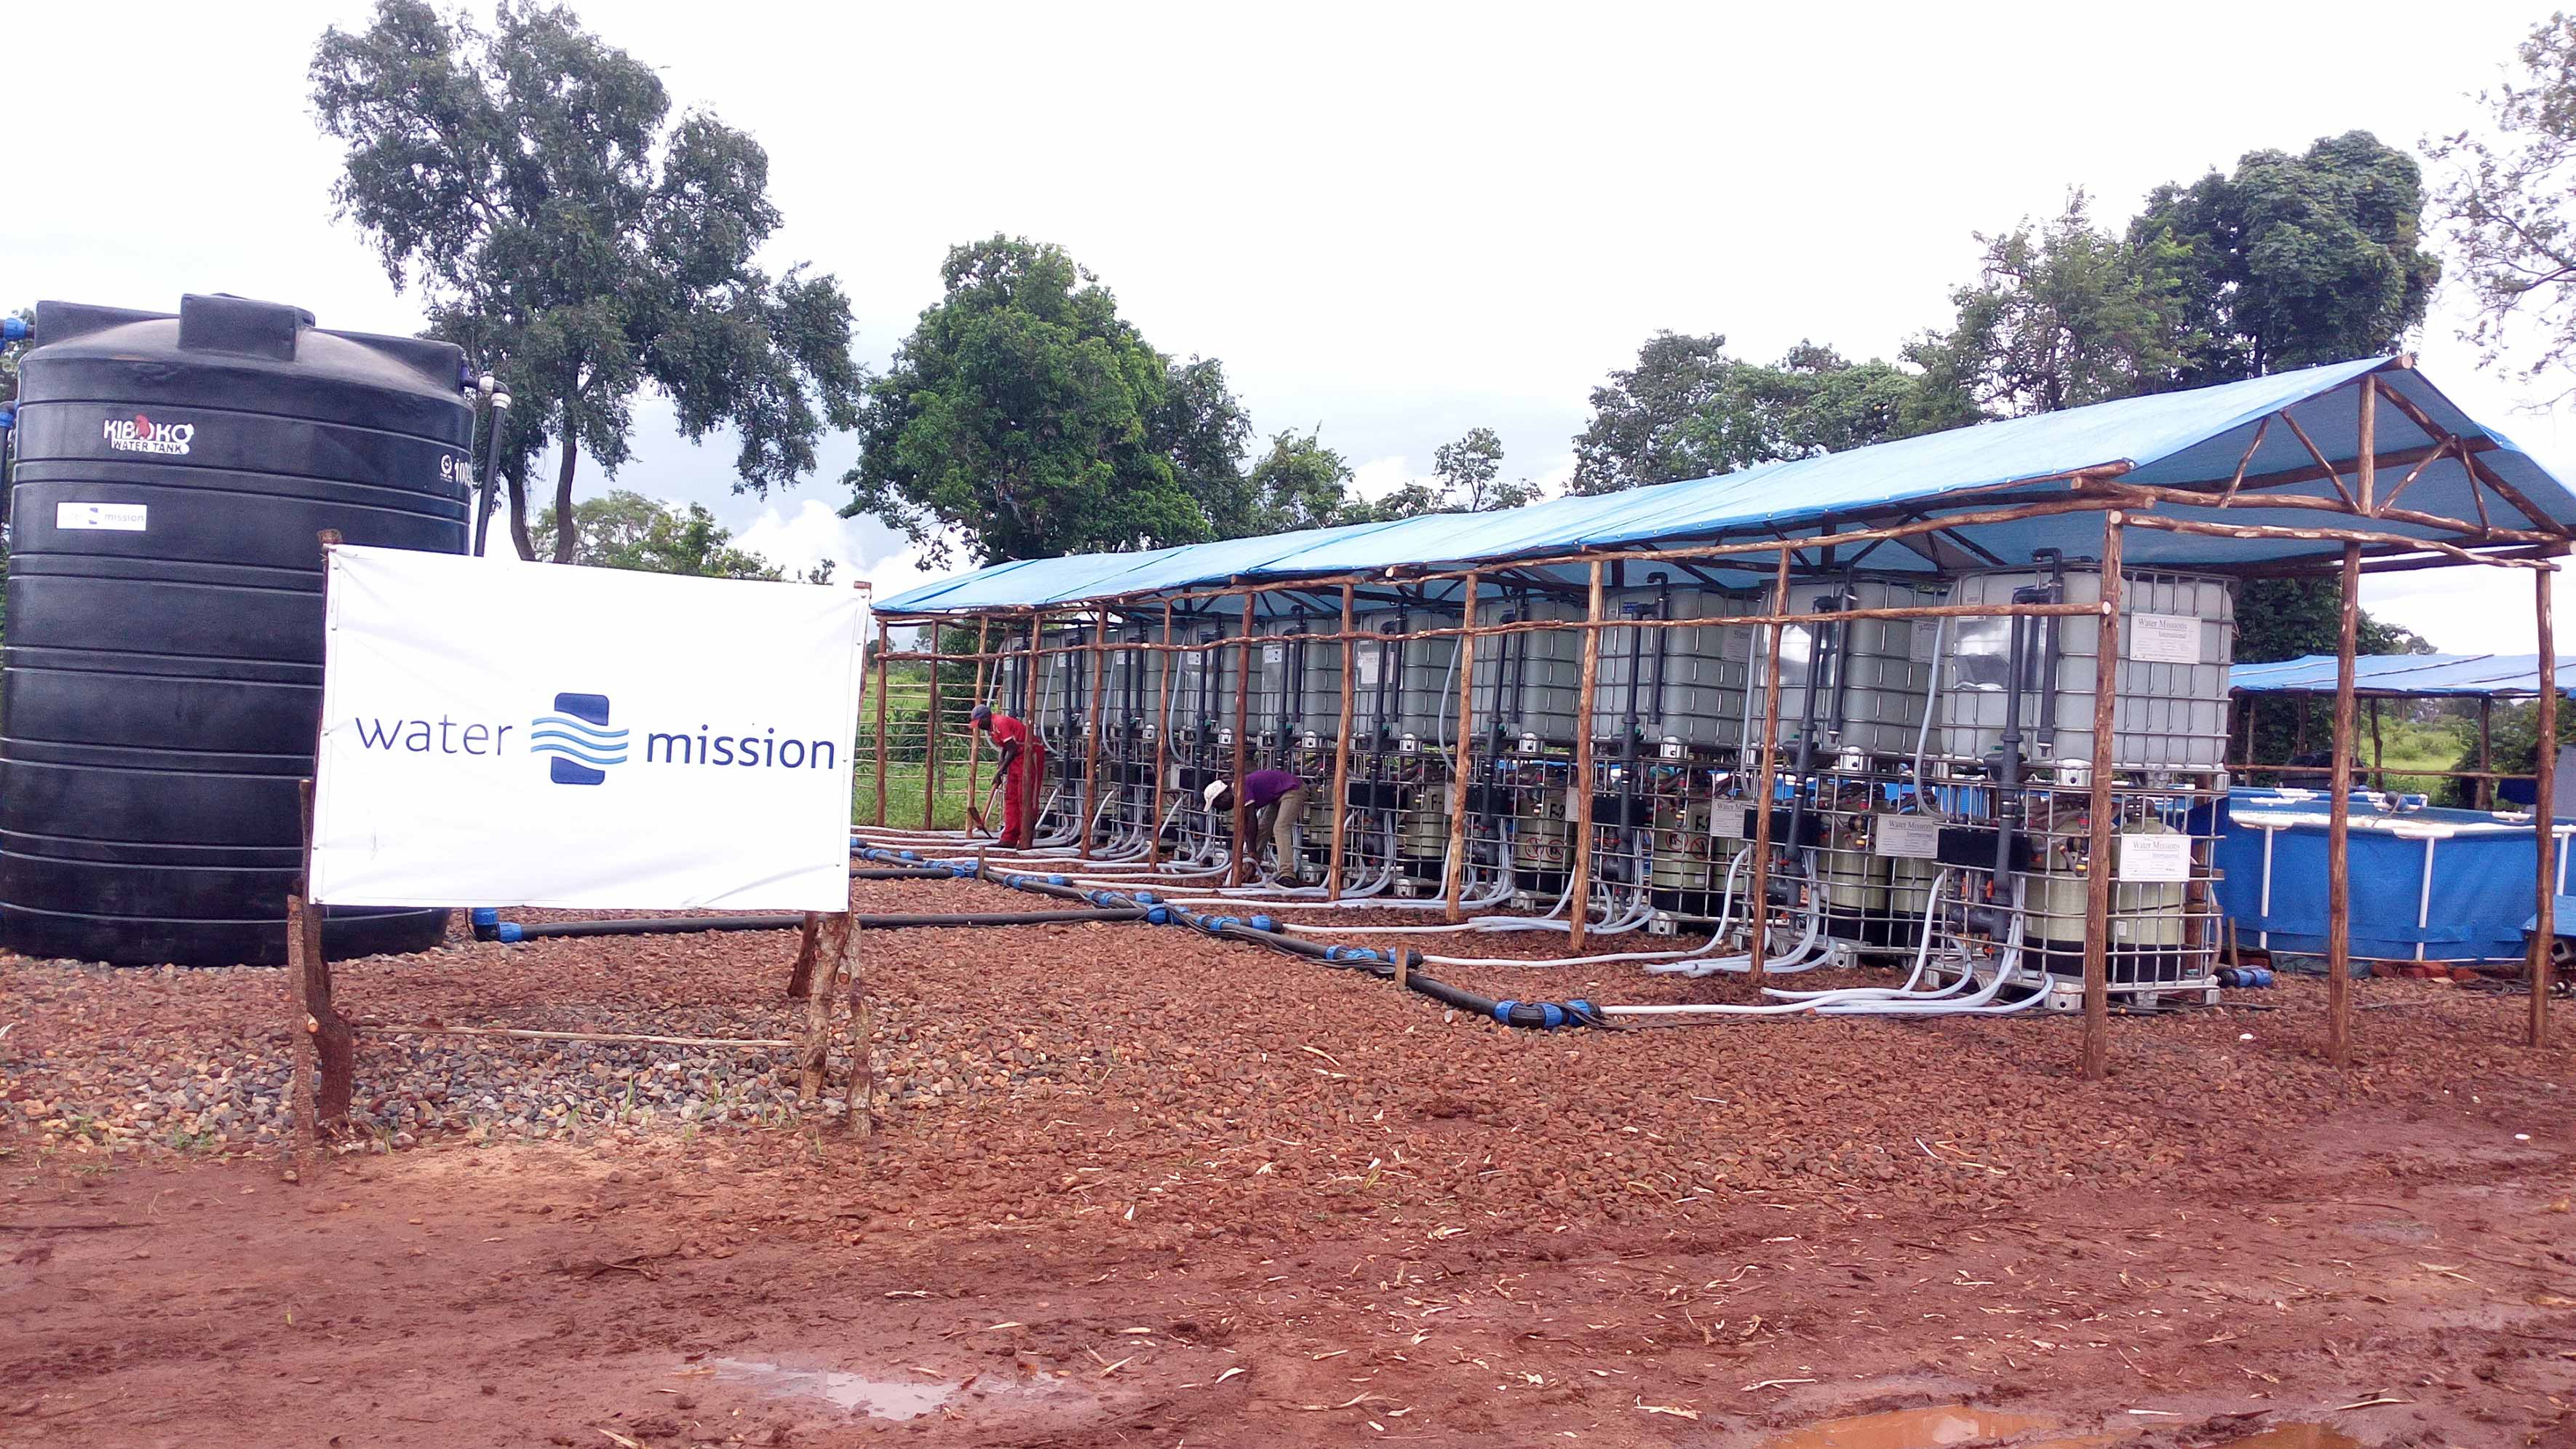 The largest safe water treatment system located in Nyarugusu, Tanzania.